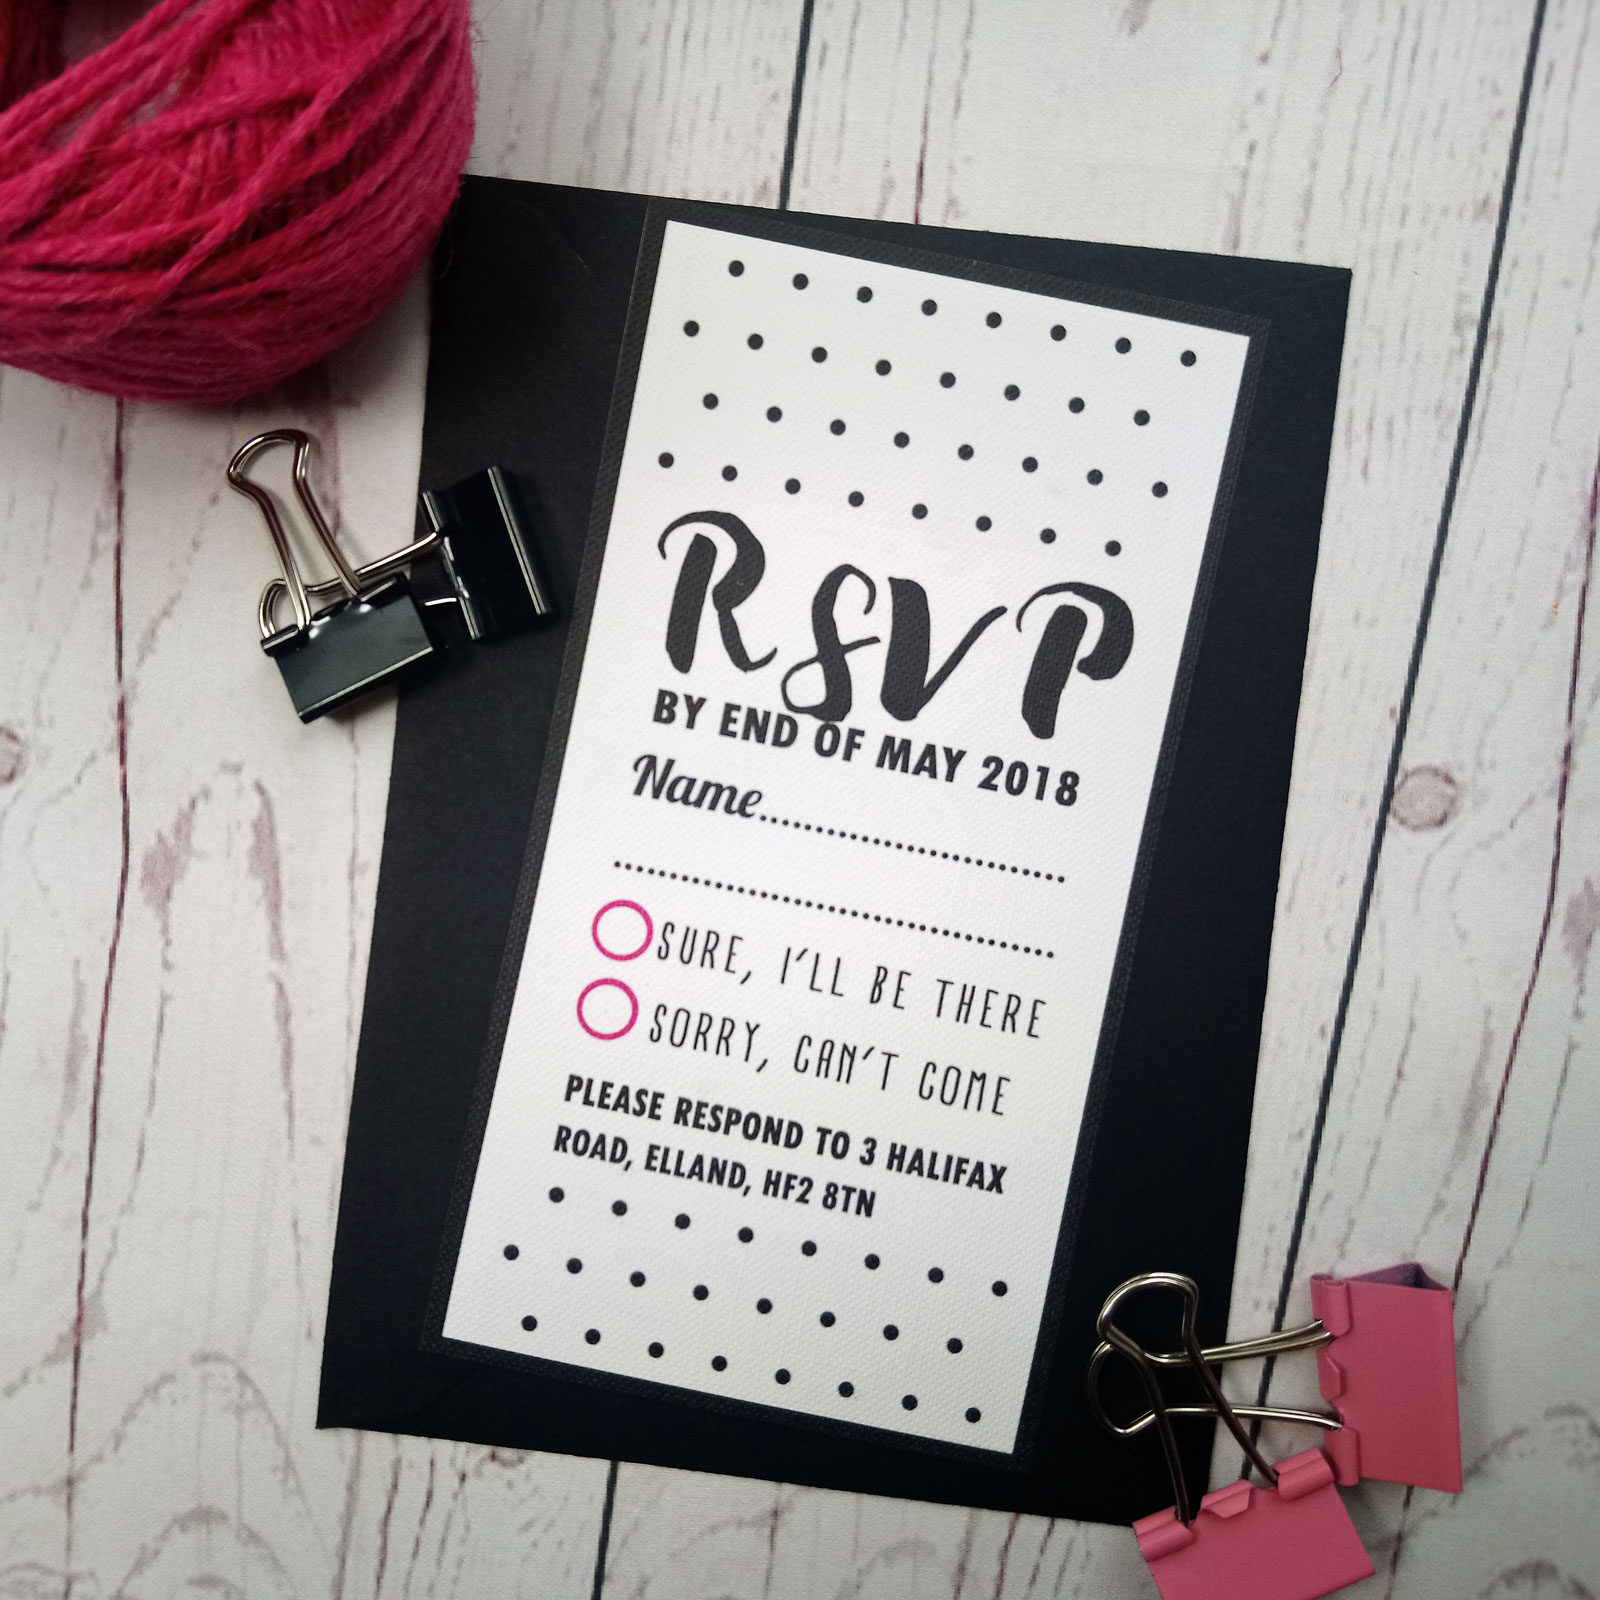 Polka dot RSVP card. RSVP card in the classic polka dot style in black and fuchsia colours with black envelope.